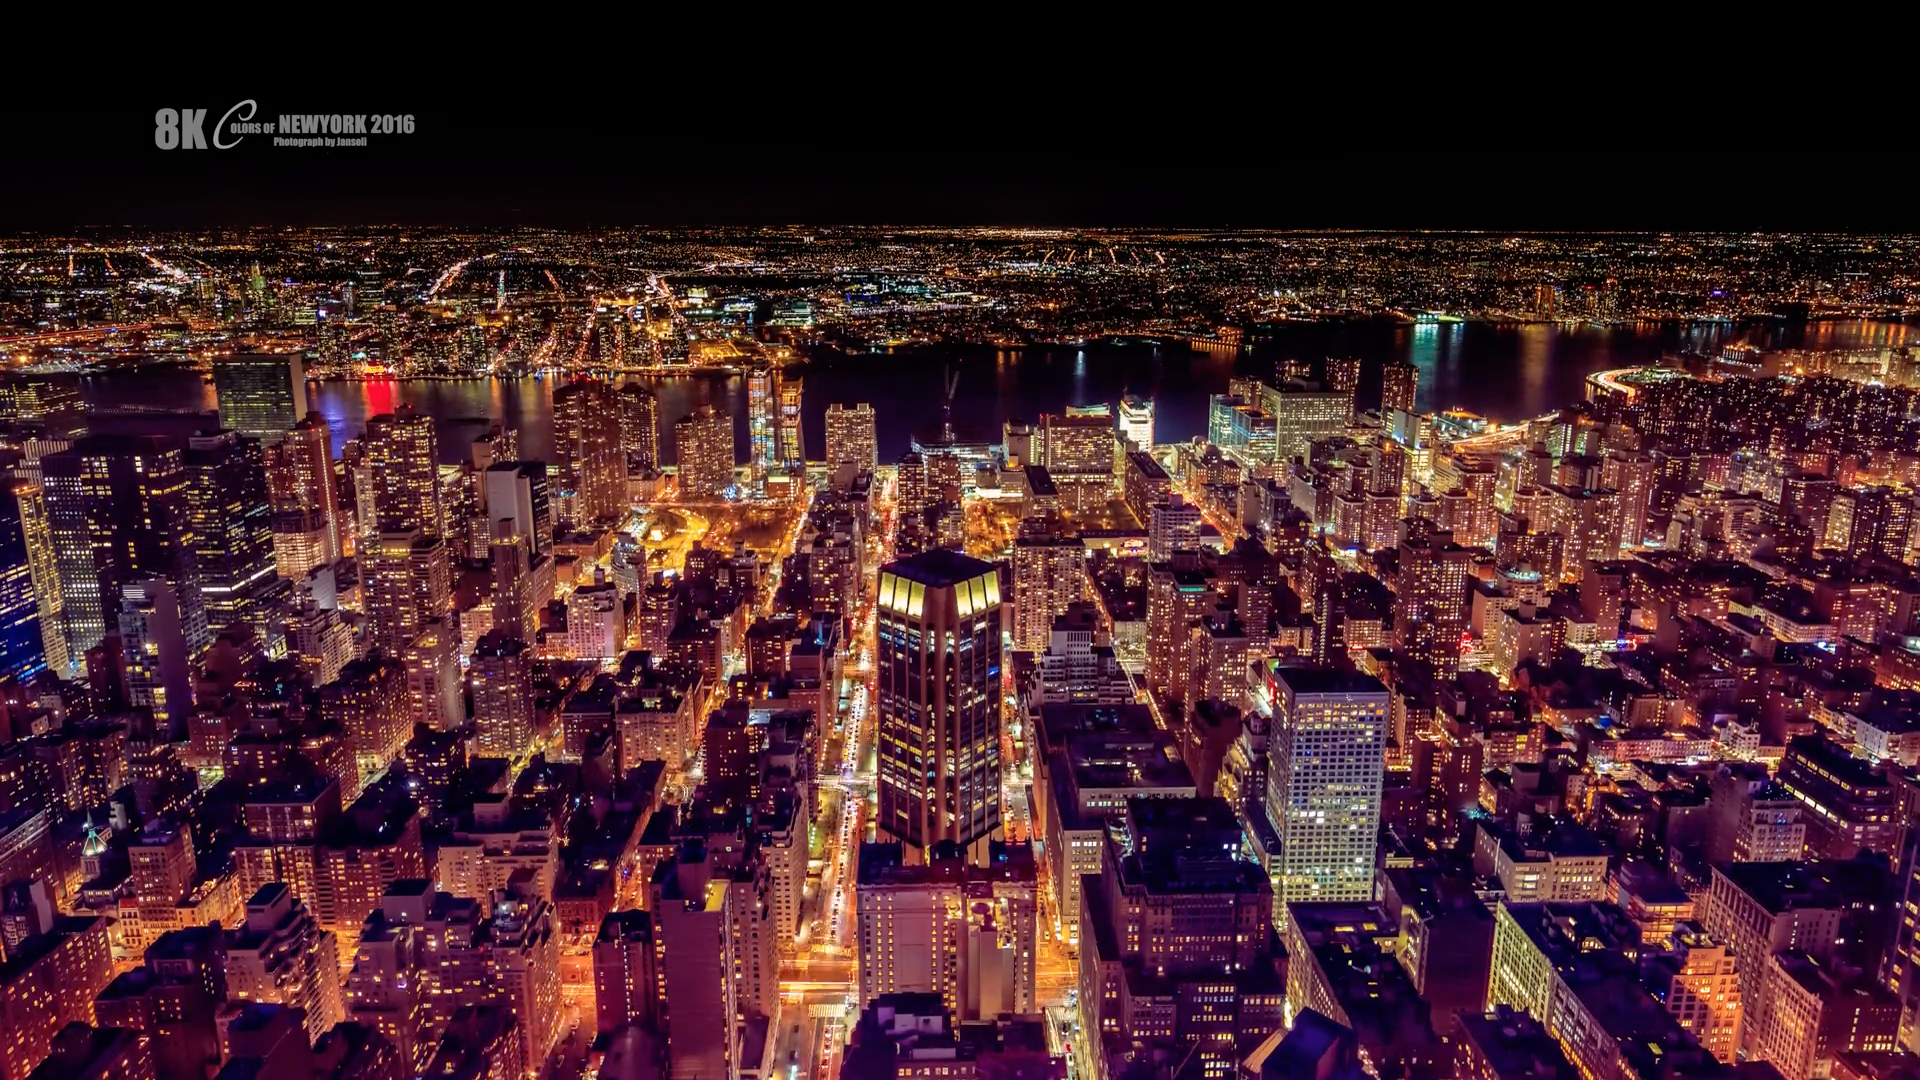 Check Out This 8k Time Lapse Of New York City Digital Photo Magazine